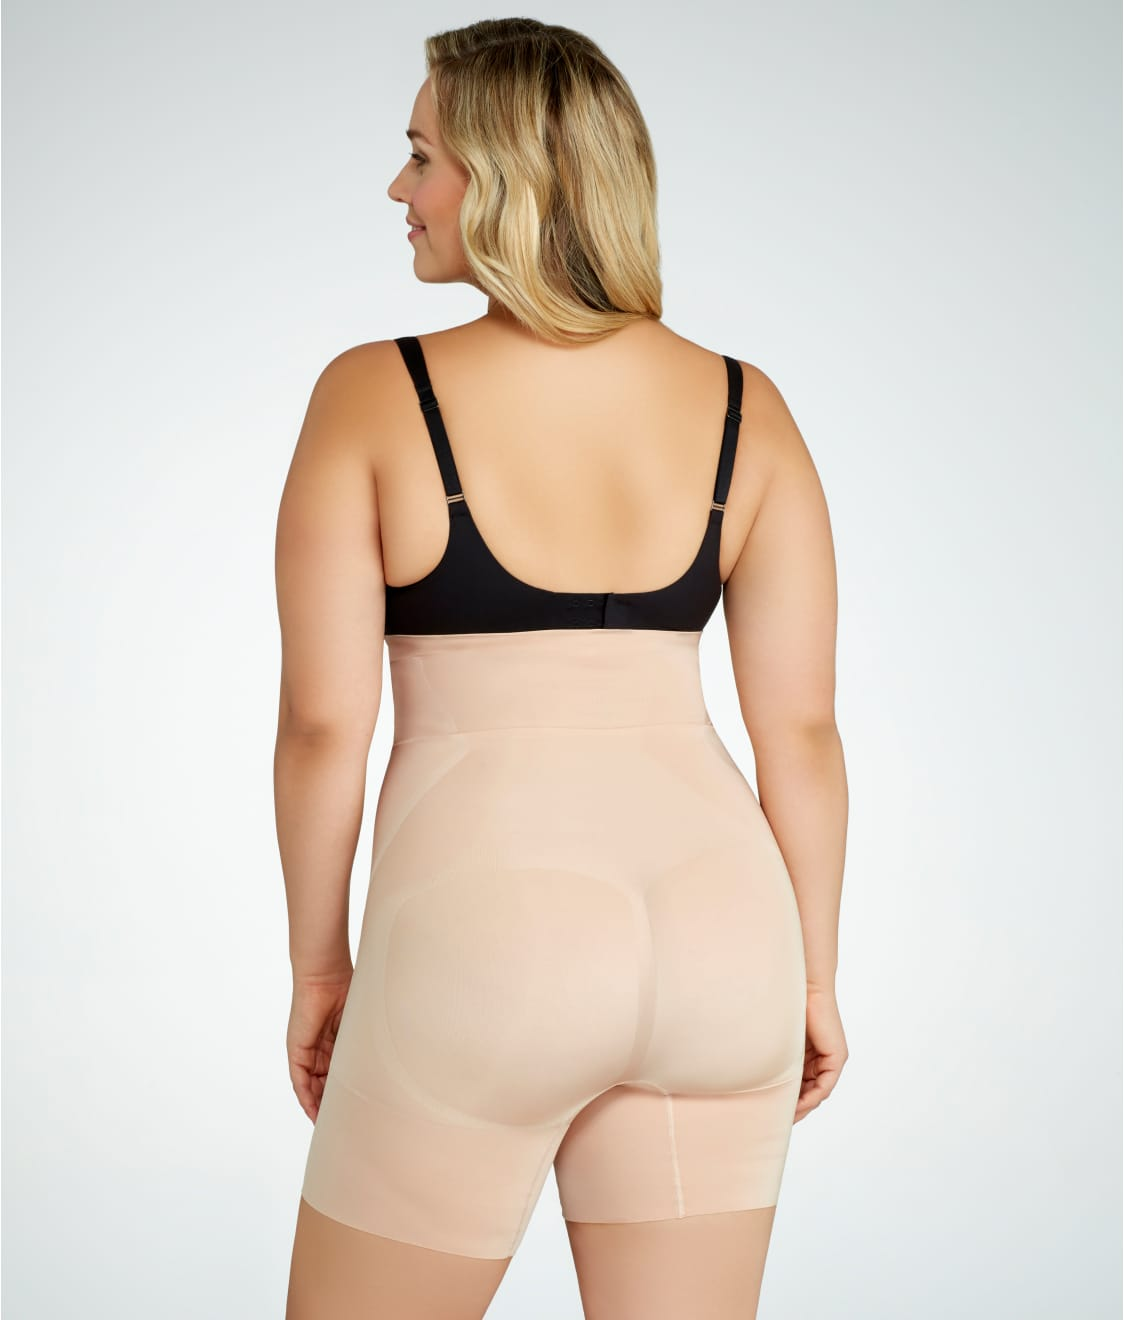 782d73fae SPANX Plus Size OnCore Firm Control High-Waist Thigh Shaper